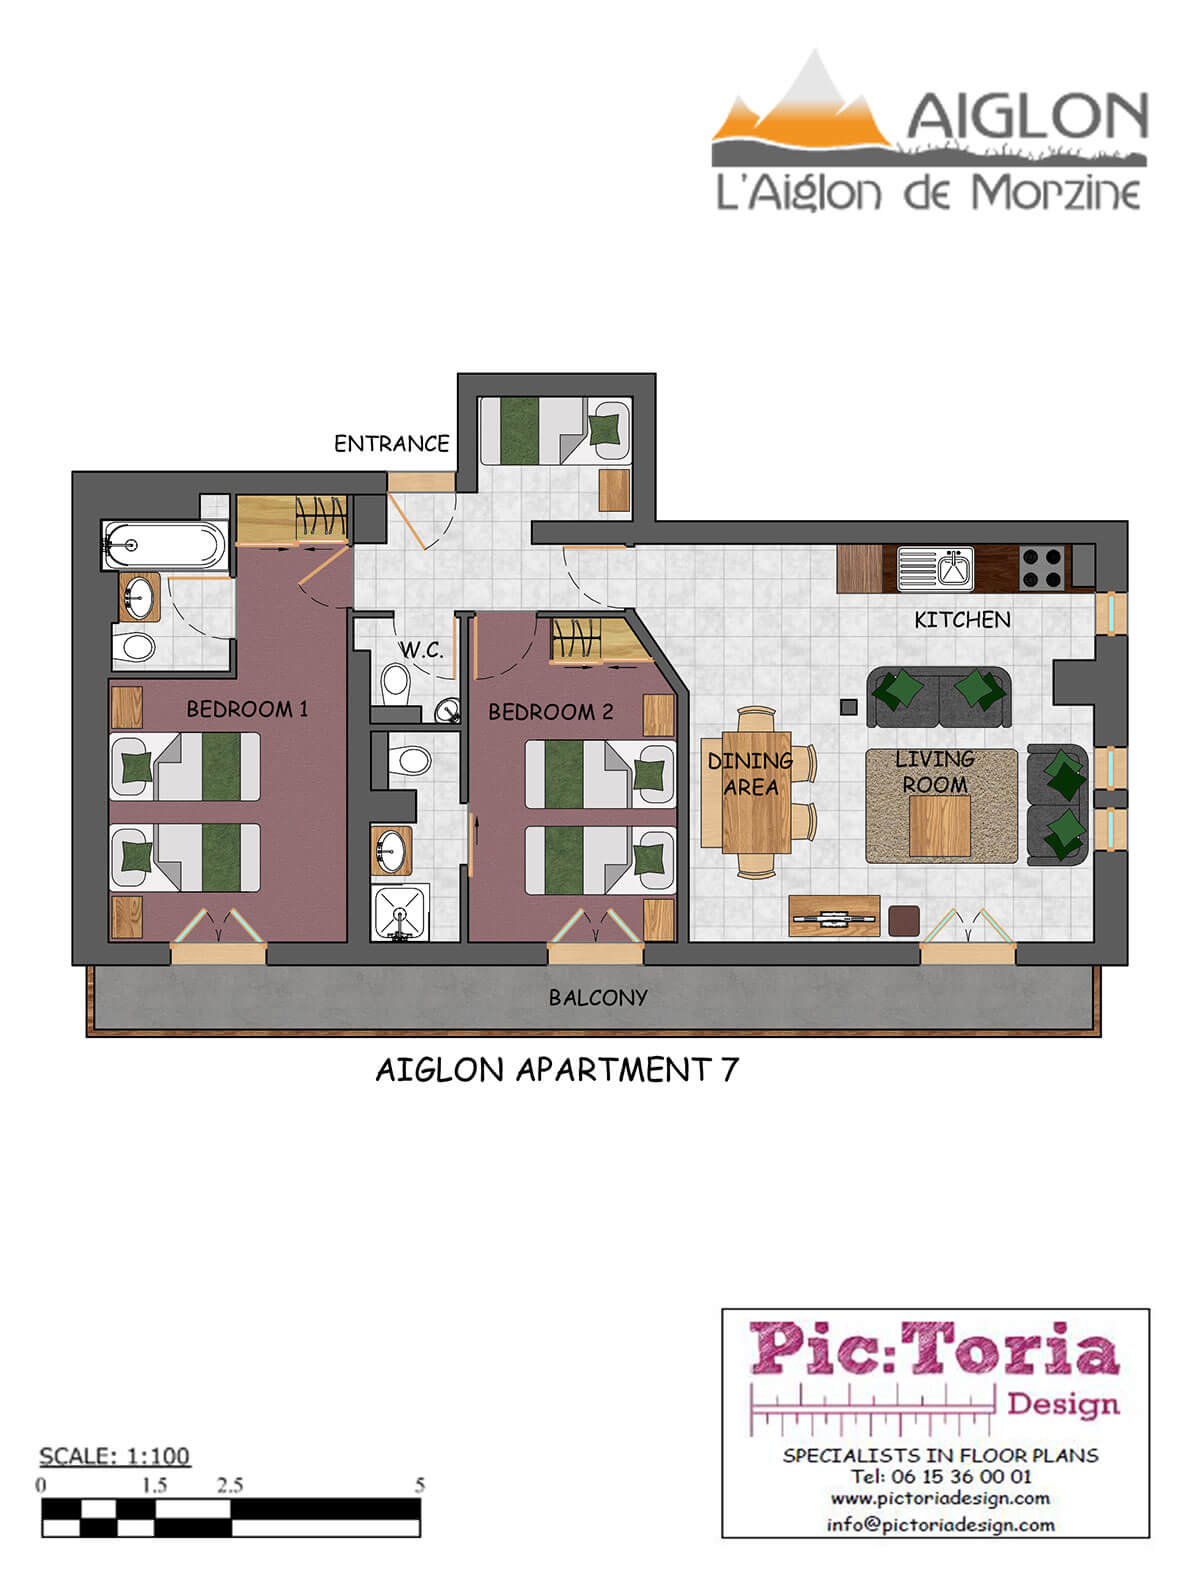 Image of a 2 Bedroom plus Cabin Morzine Self-Catered Apartment, floor plan #7